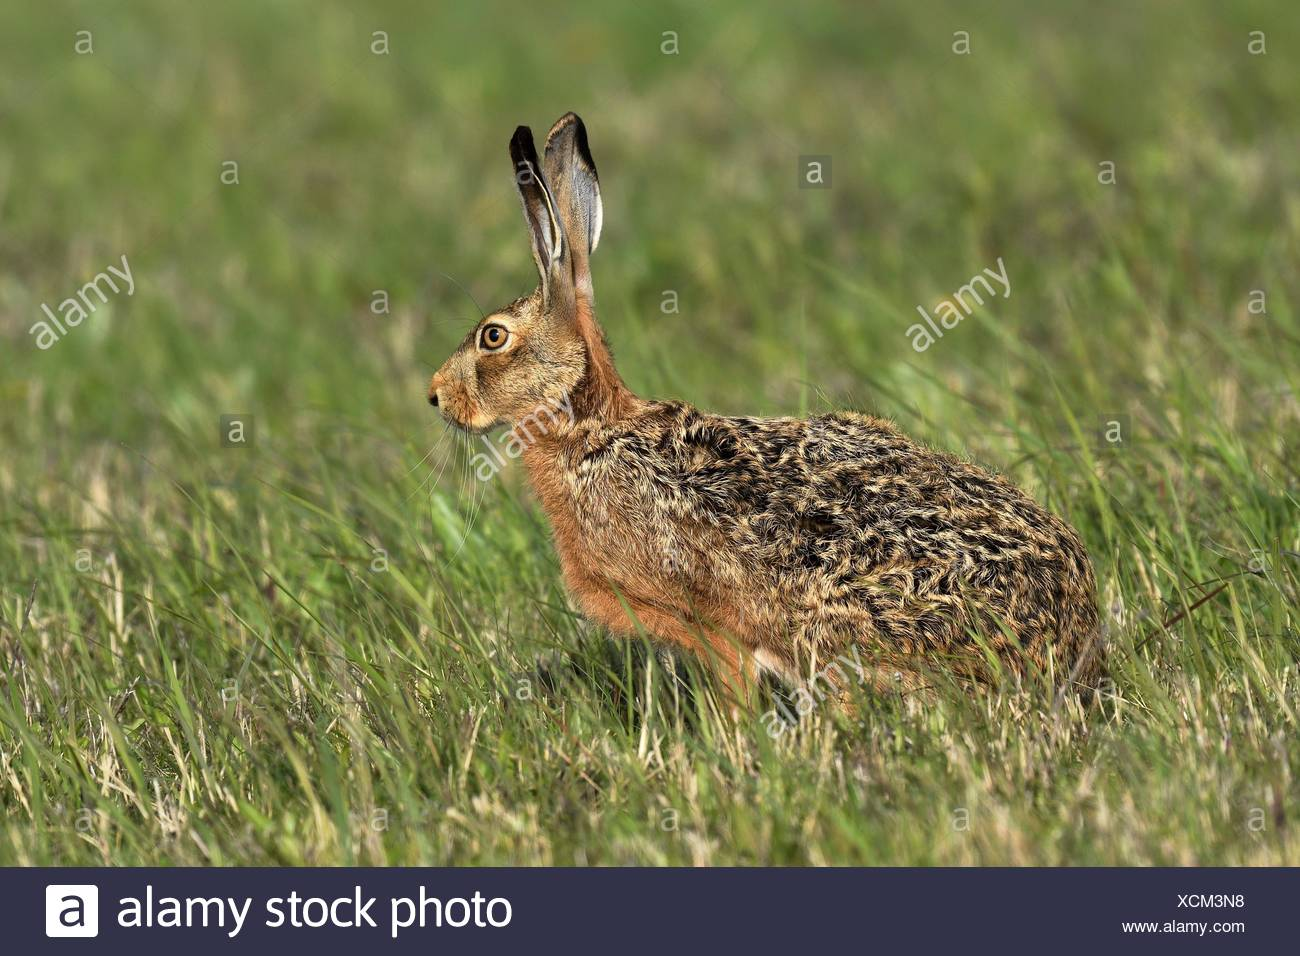 European hare (Lepus europaeus), located in Wiese, Lake Neusiedl National Park, Burgenland, Austria - Stock Image